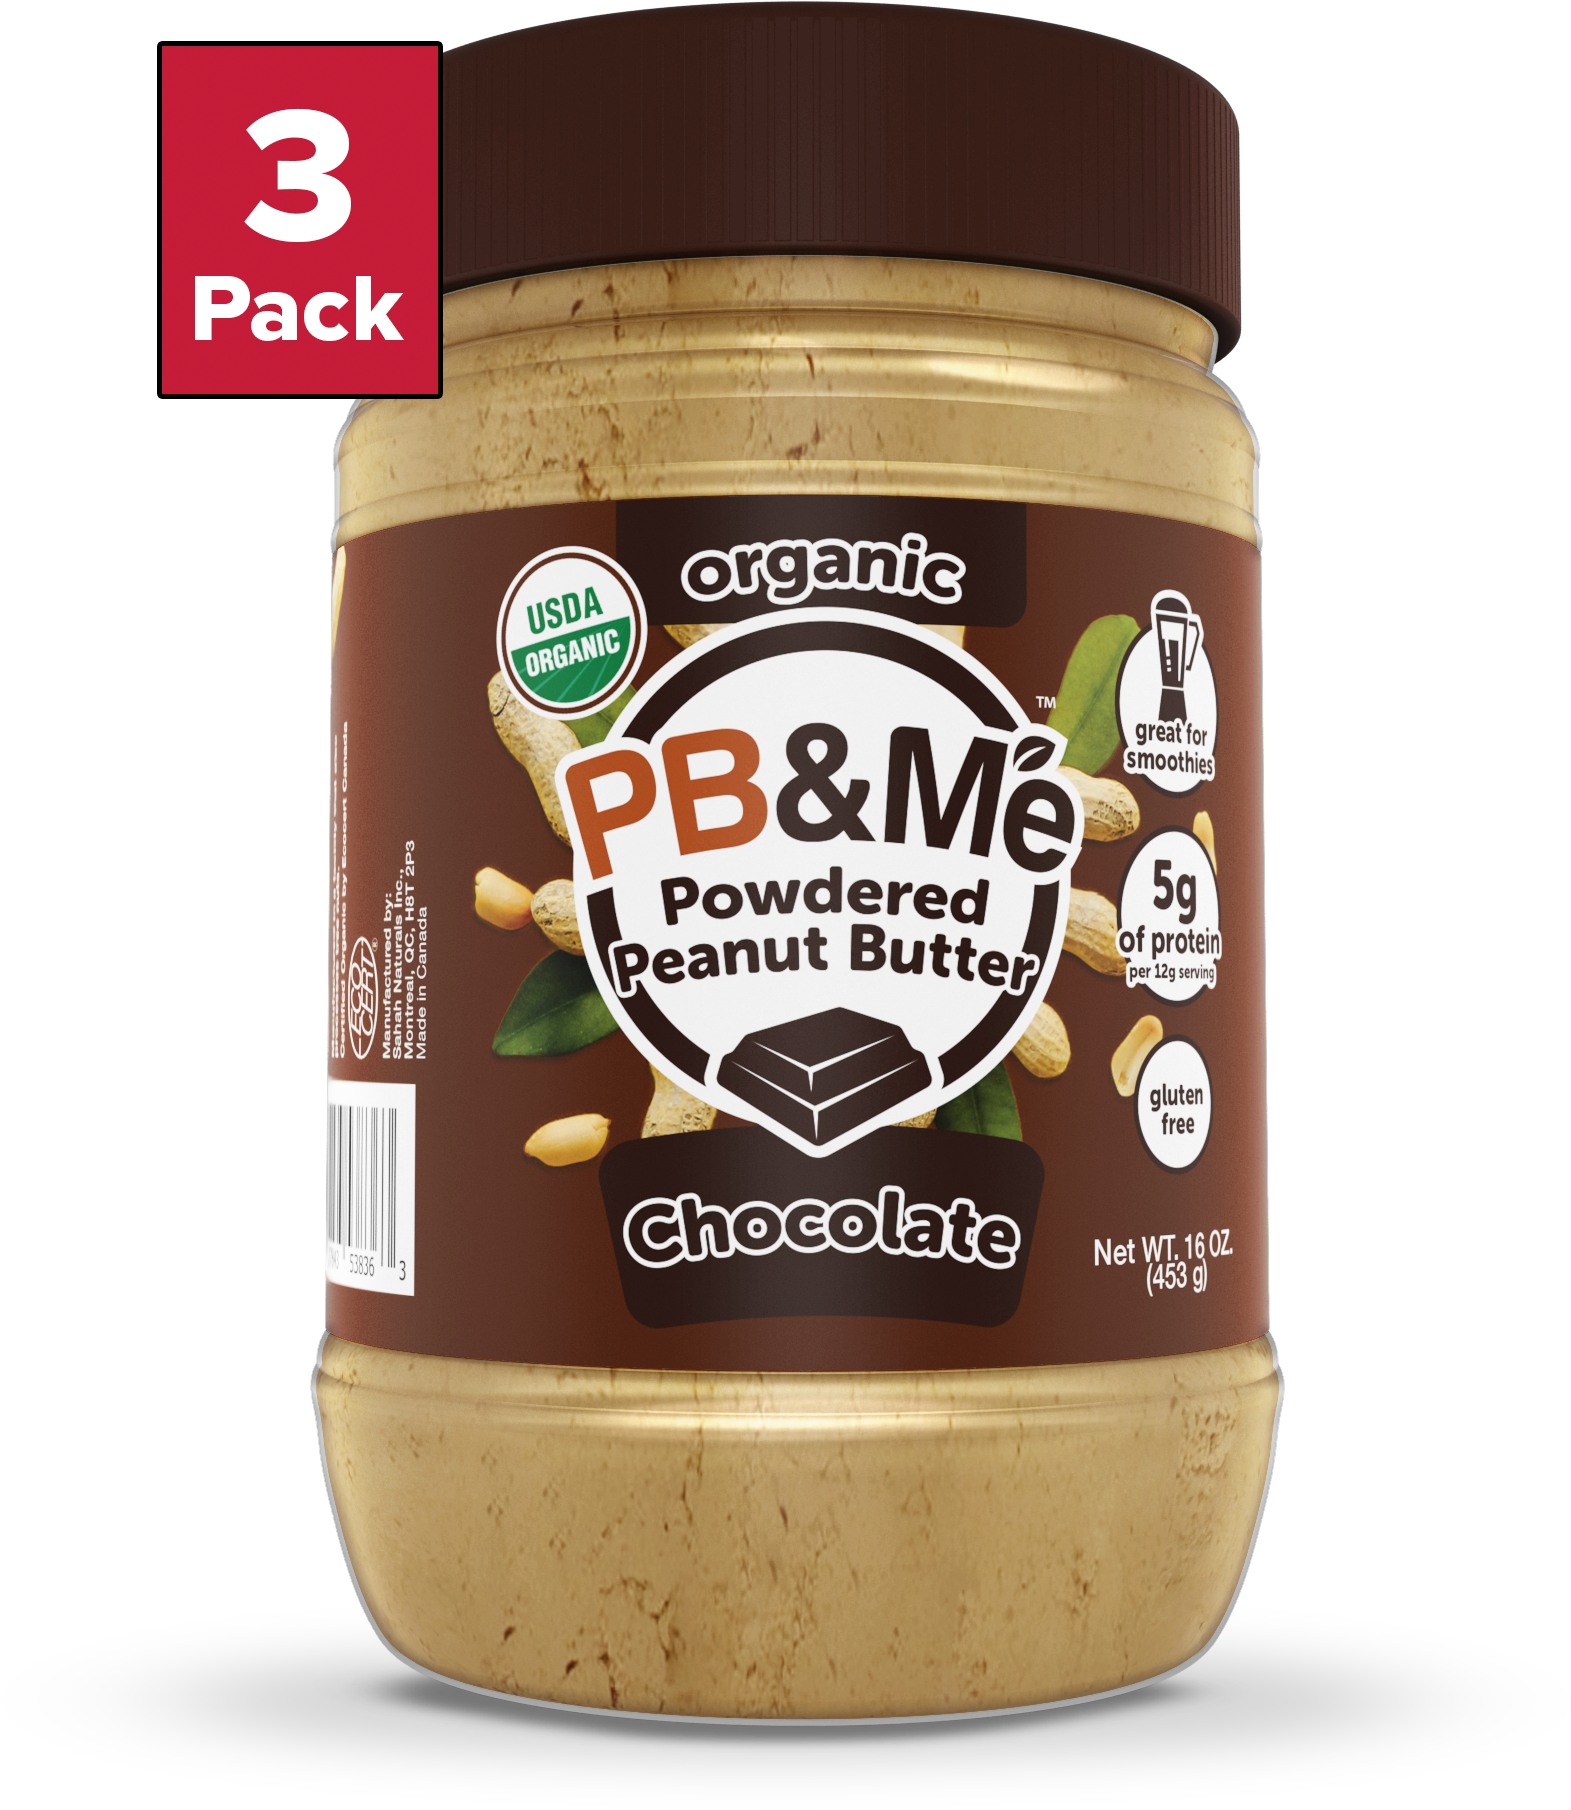 Organic Powdered Peanut Butter - Chocolate (1LB)